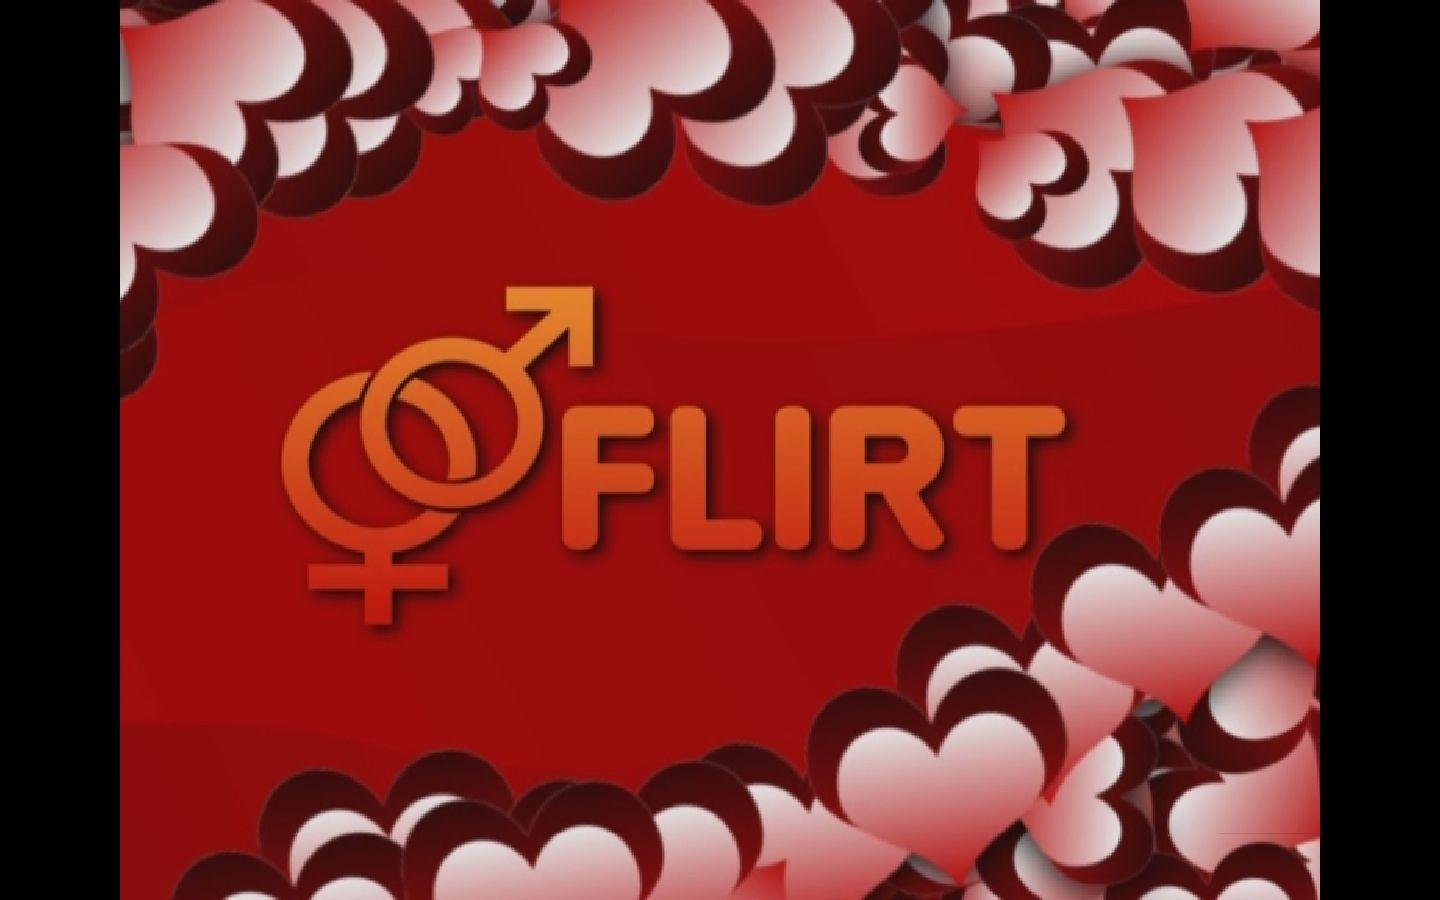 flirting day hd wallpapers Reddit is also anonymous so you can be yourself wallpaper rules submitted 1 day ago by raptor819 26 comments share.